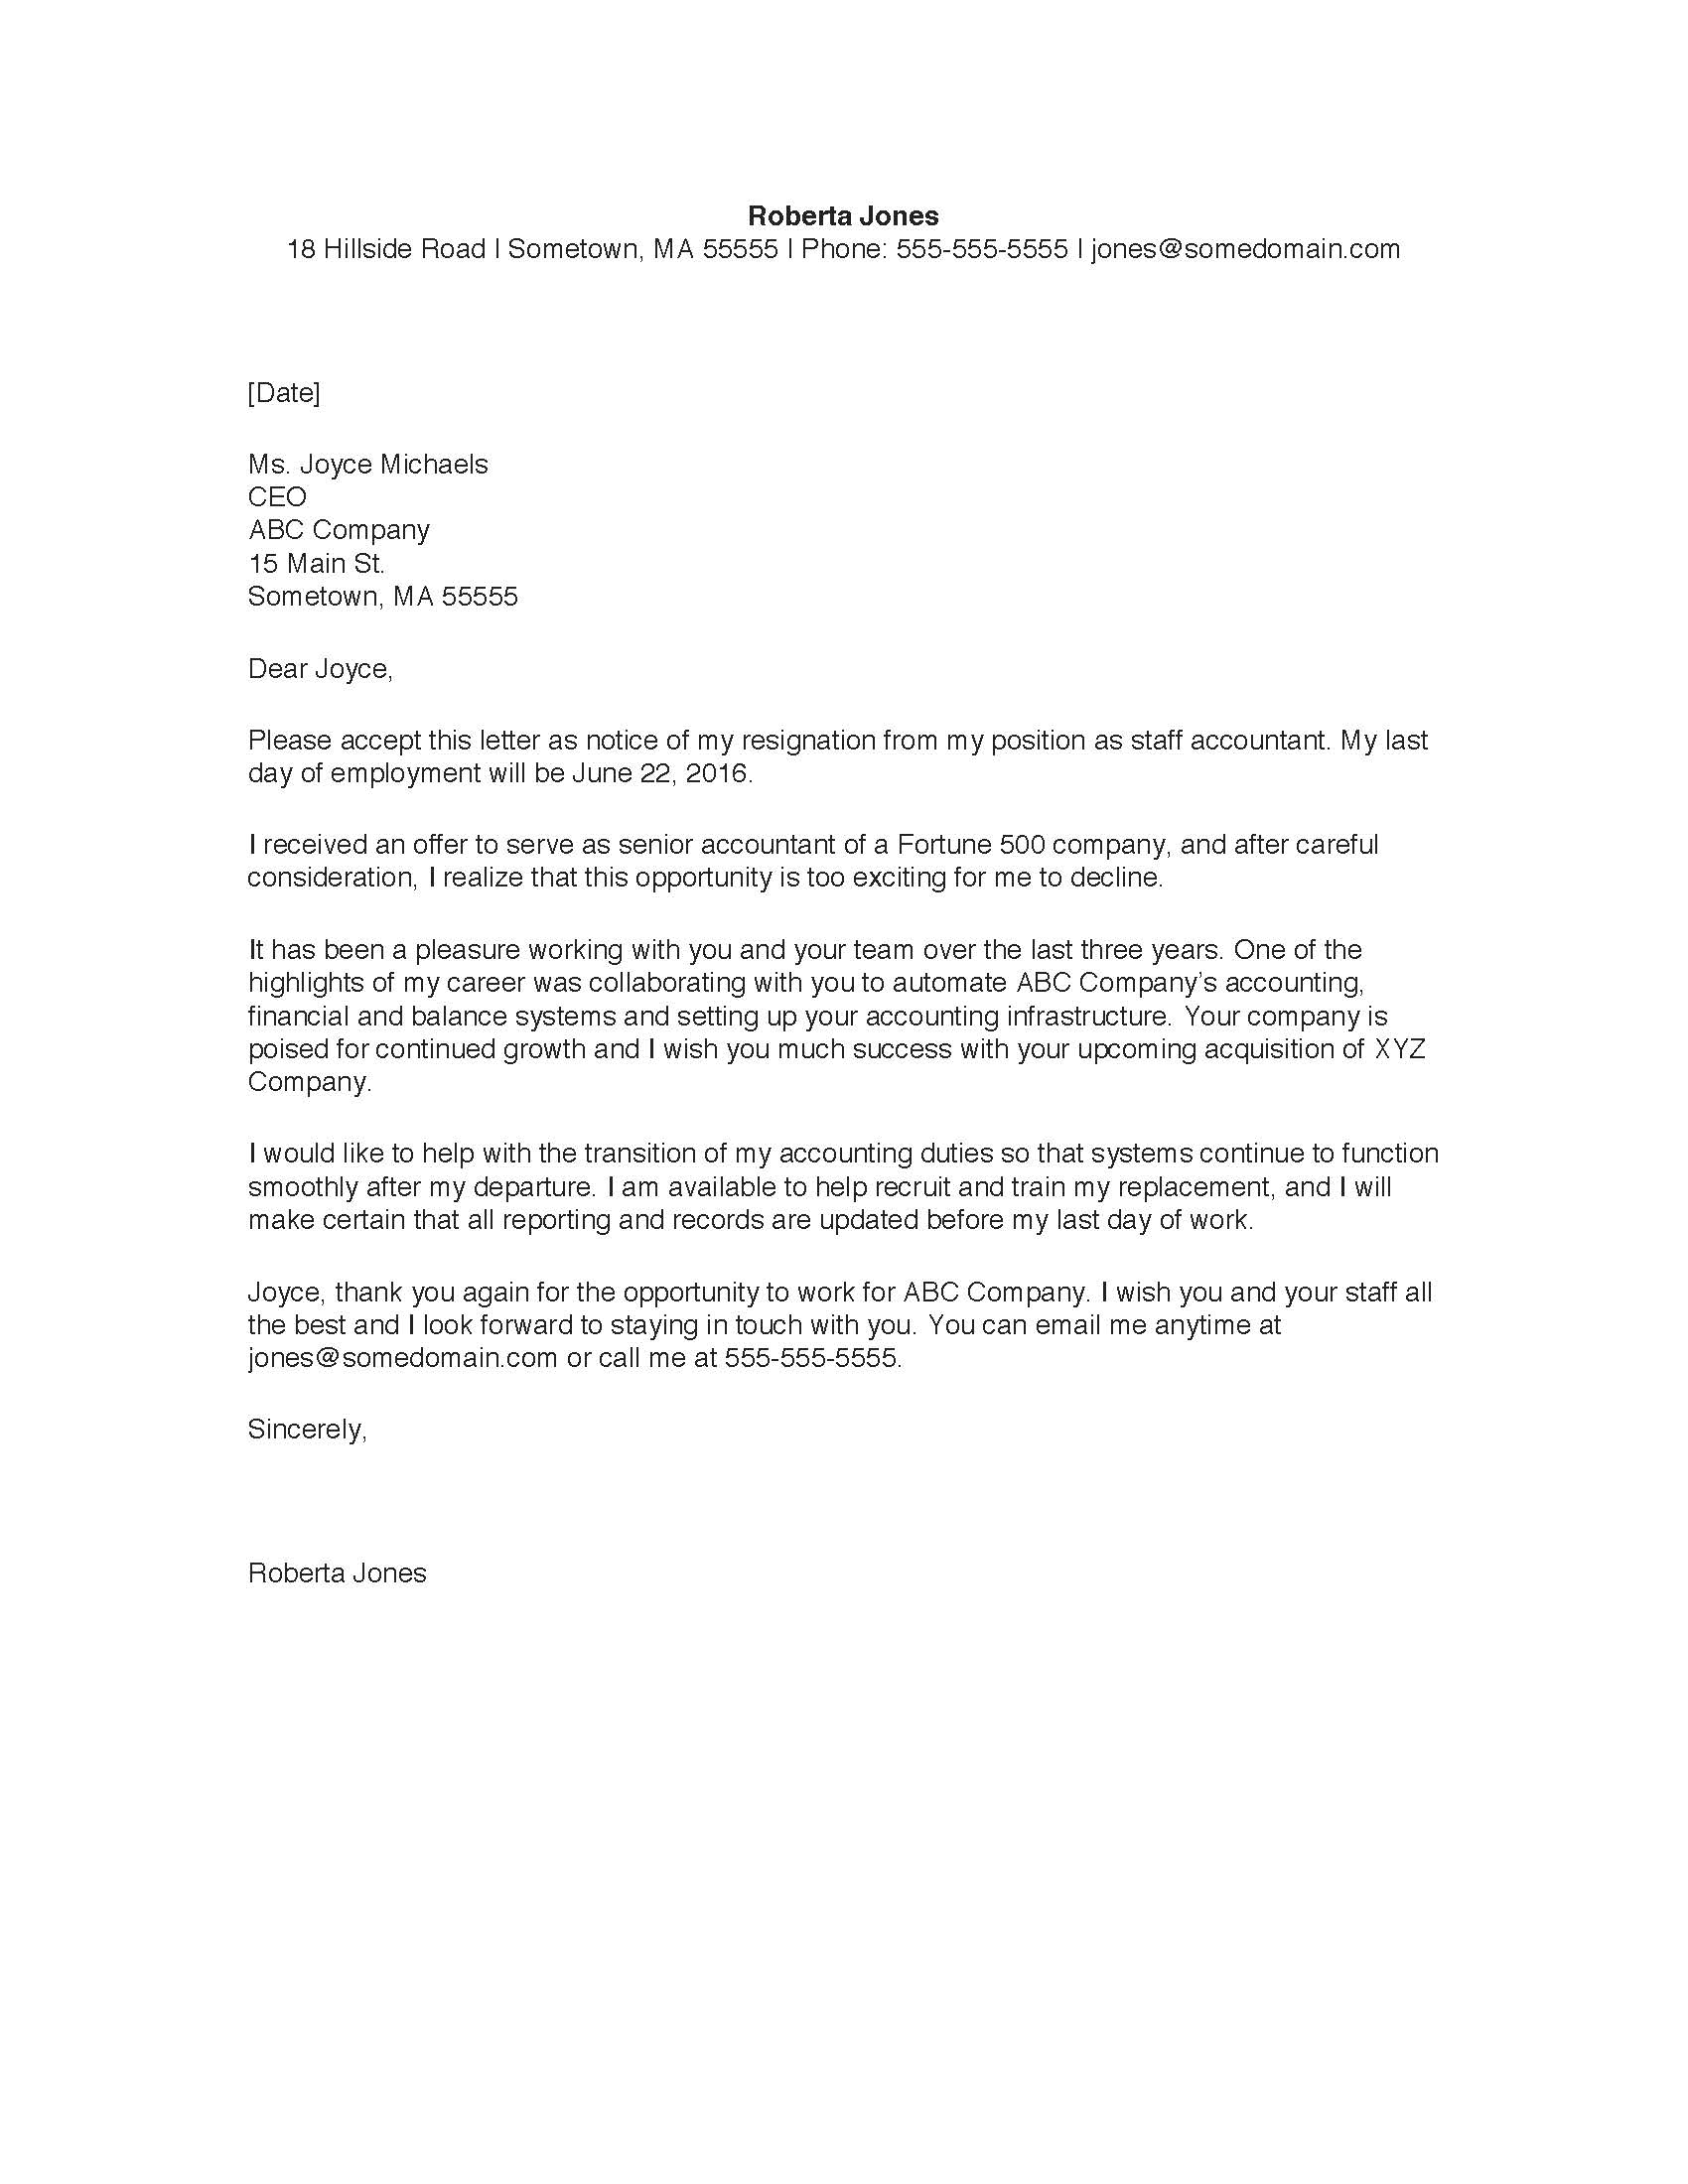 Resignation Letter | Monster com